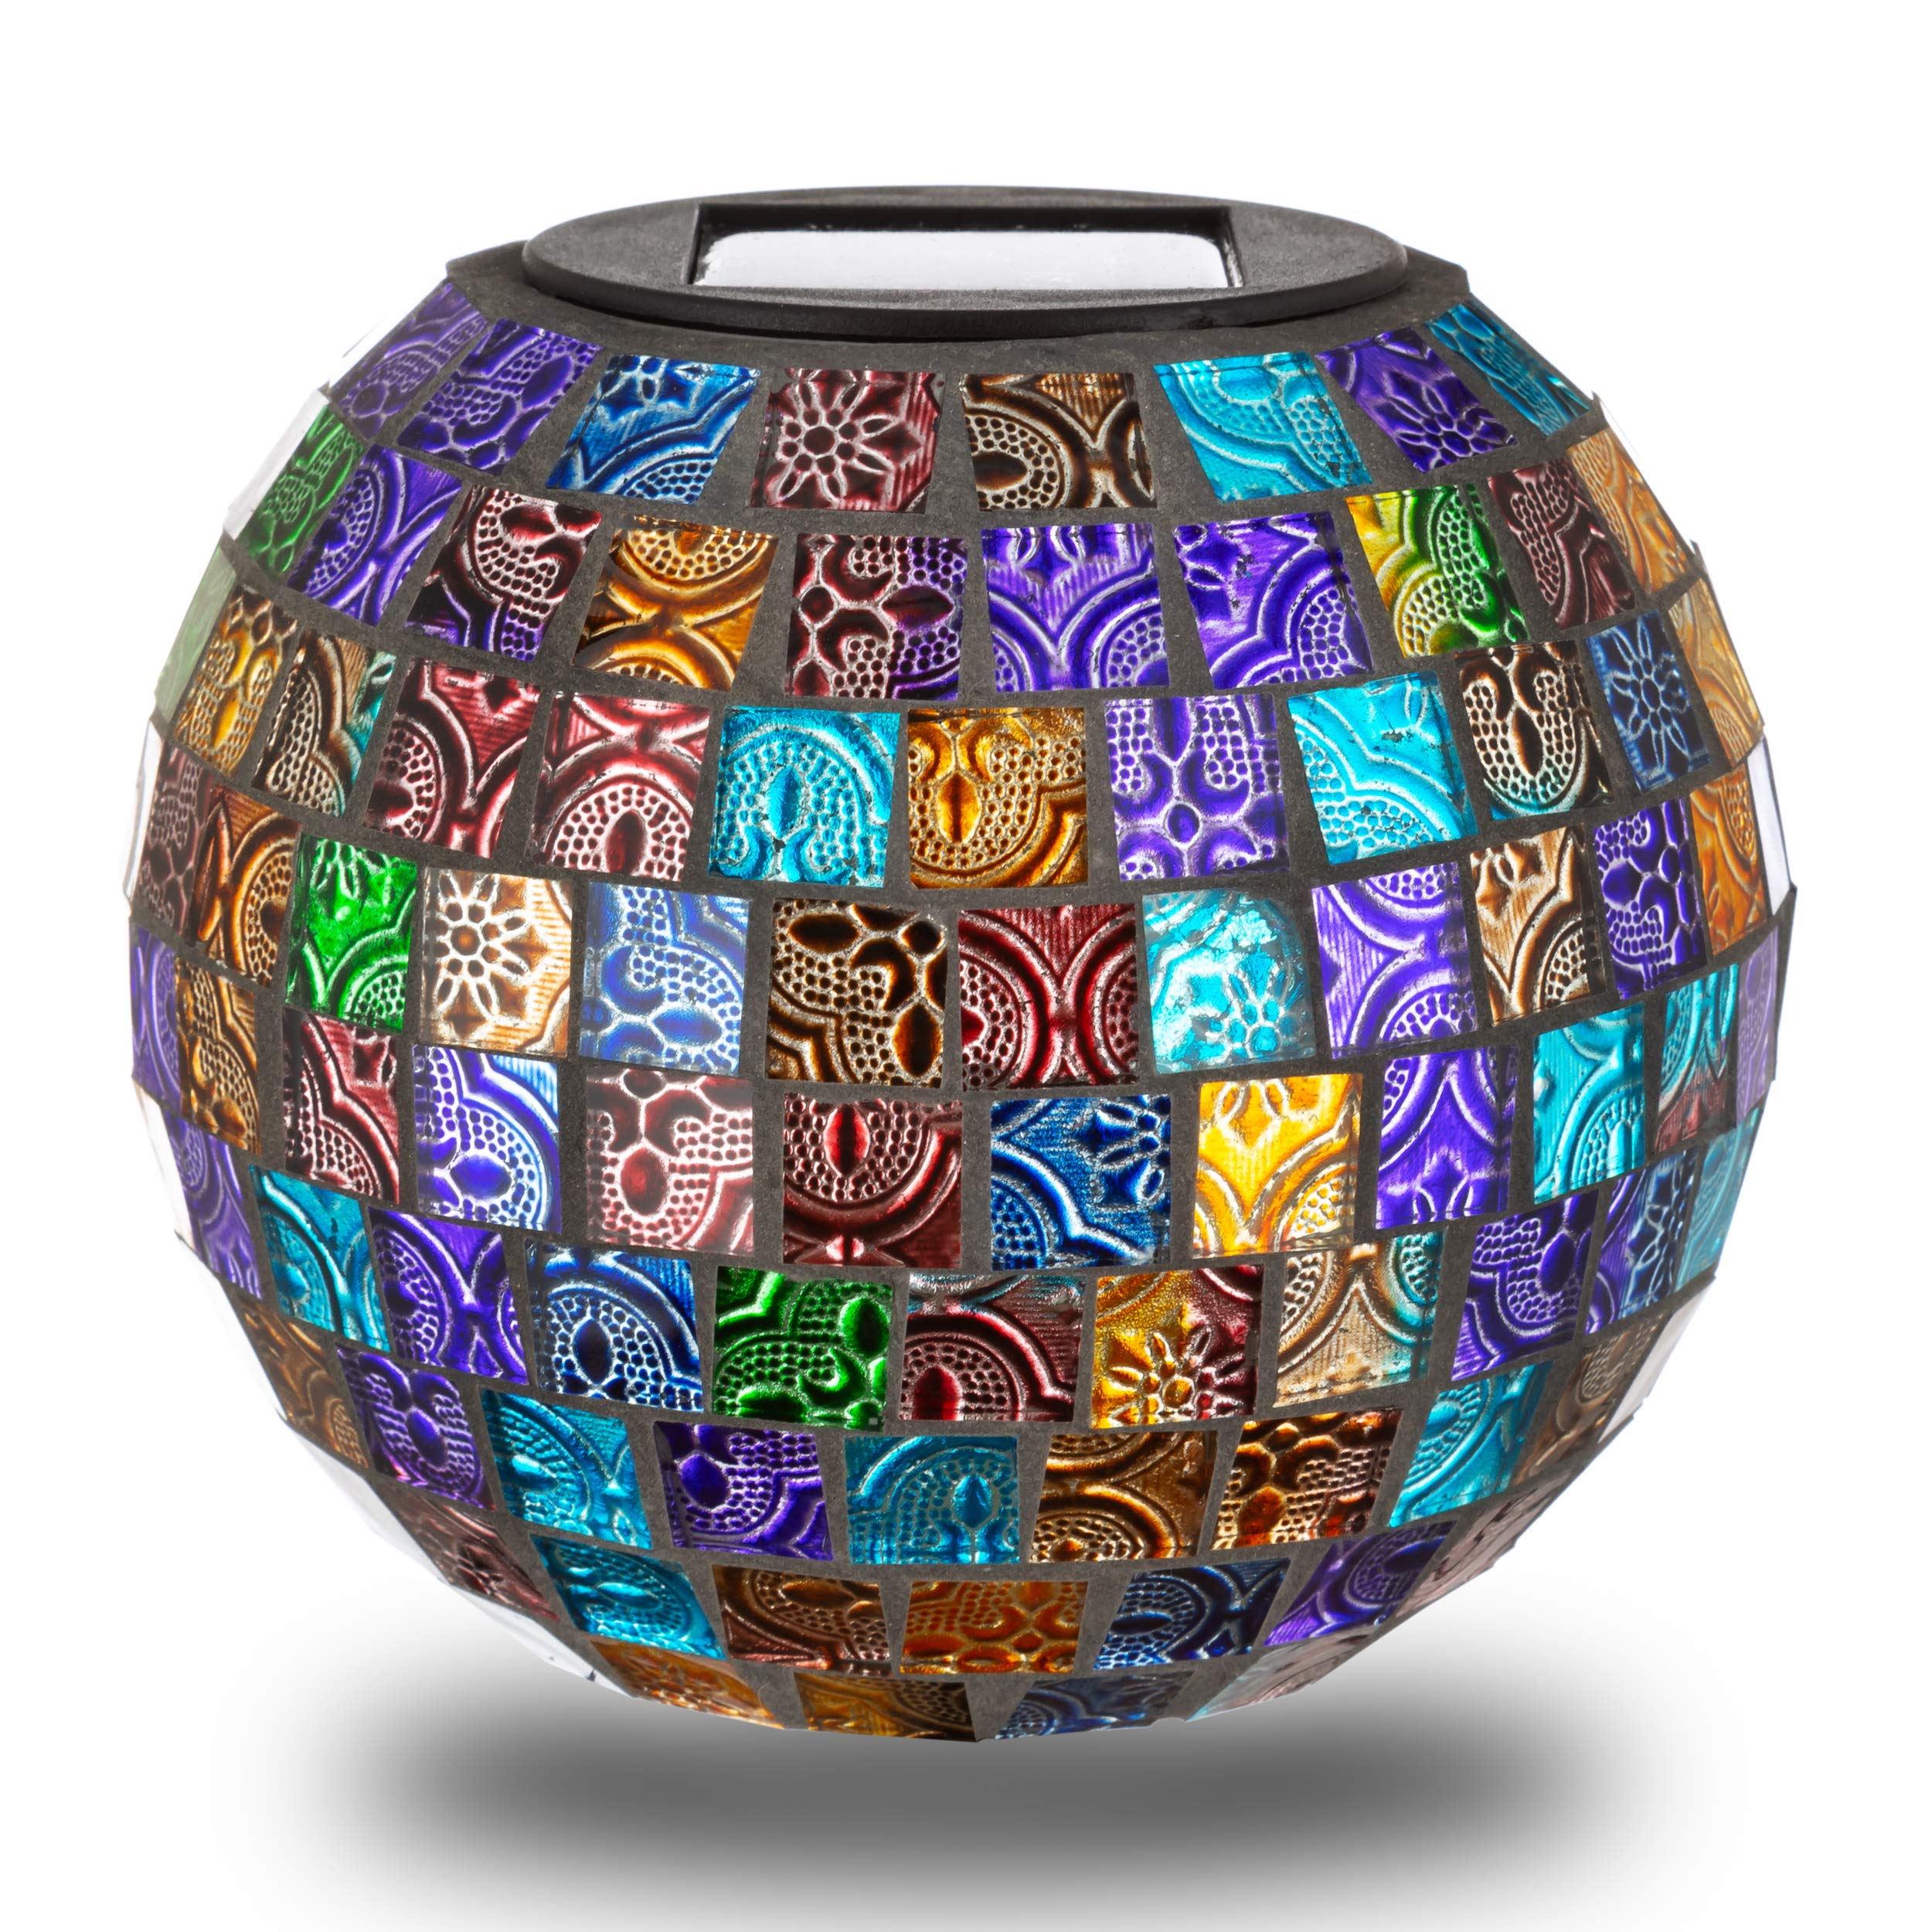 Large Mosaic Solar Glass Ball   LED Garden Decor Light   Patio, Porch, Walkway, Yard Decoration Table Lamp   Great Outdoor Christmas Gift (Disco)